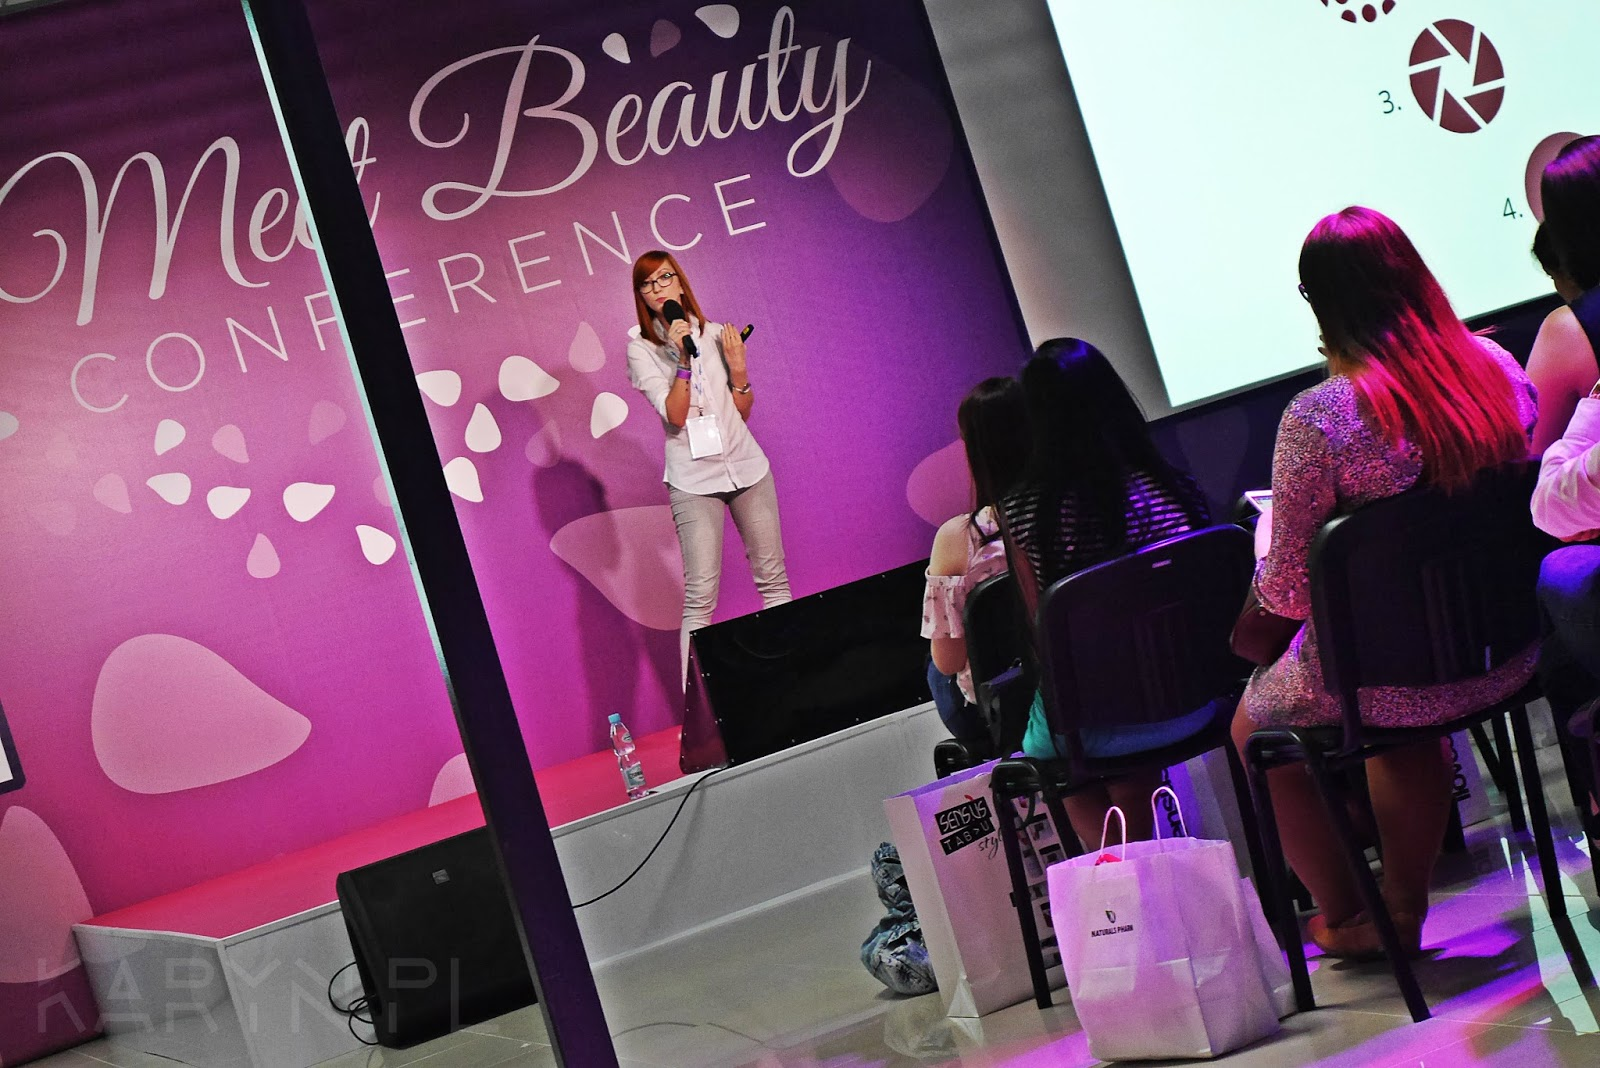 konferencja_meetbeauty_2017_beauty_days_karyn_blog_ptakexpo_22051717